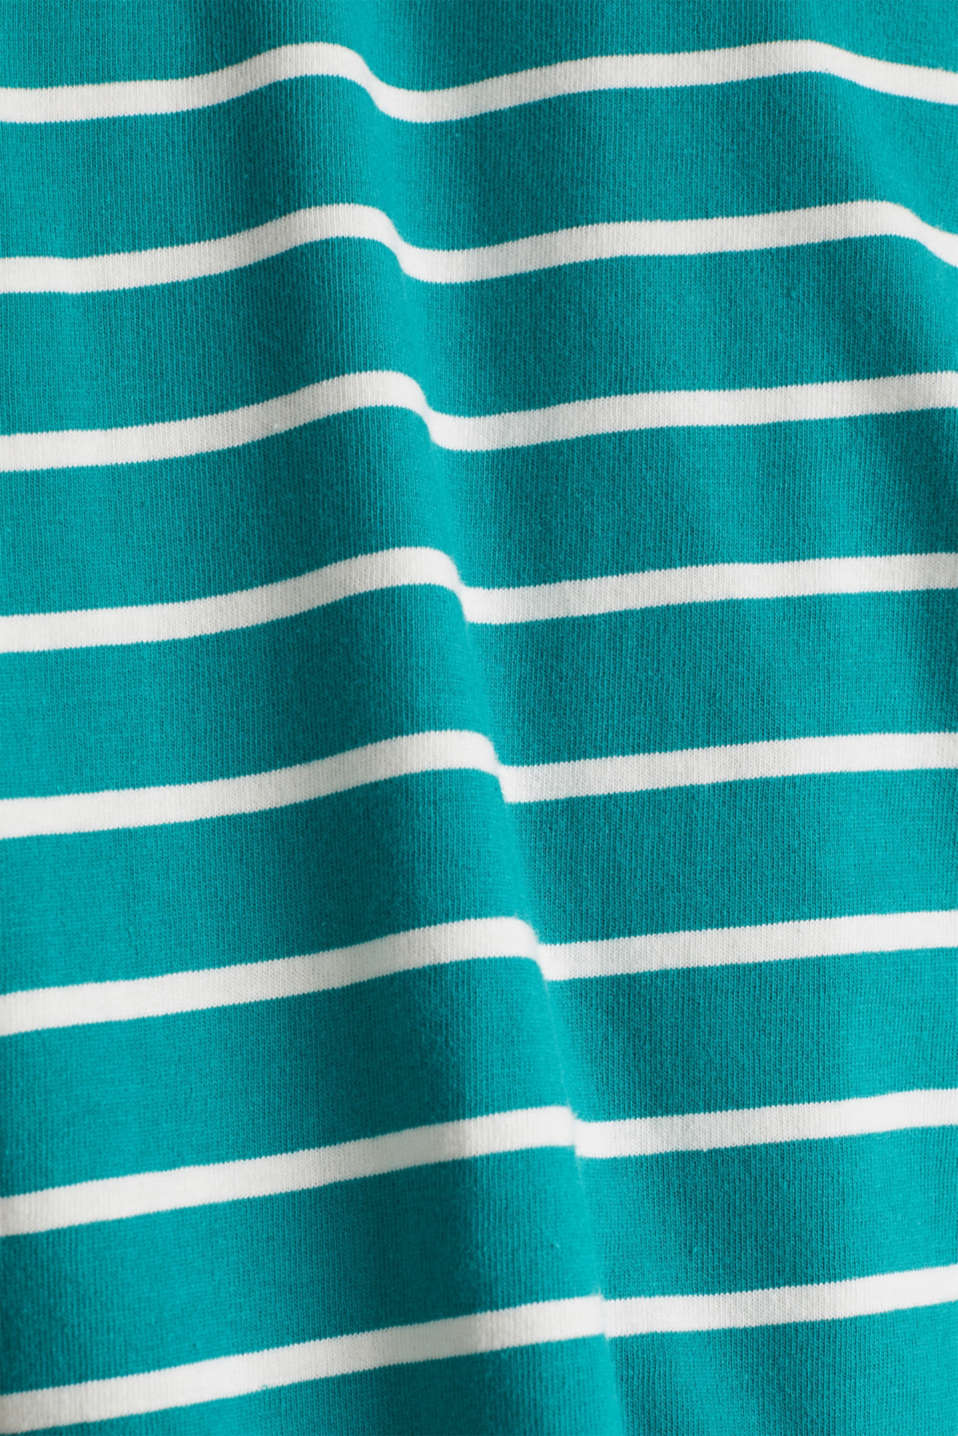 Striped top with embroidery, 100% cotton, TEAL GREEN, detail image number 3